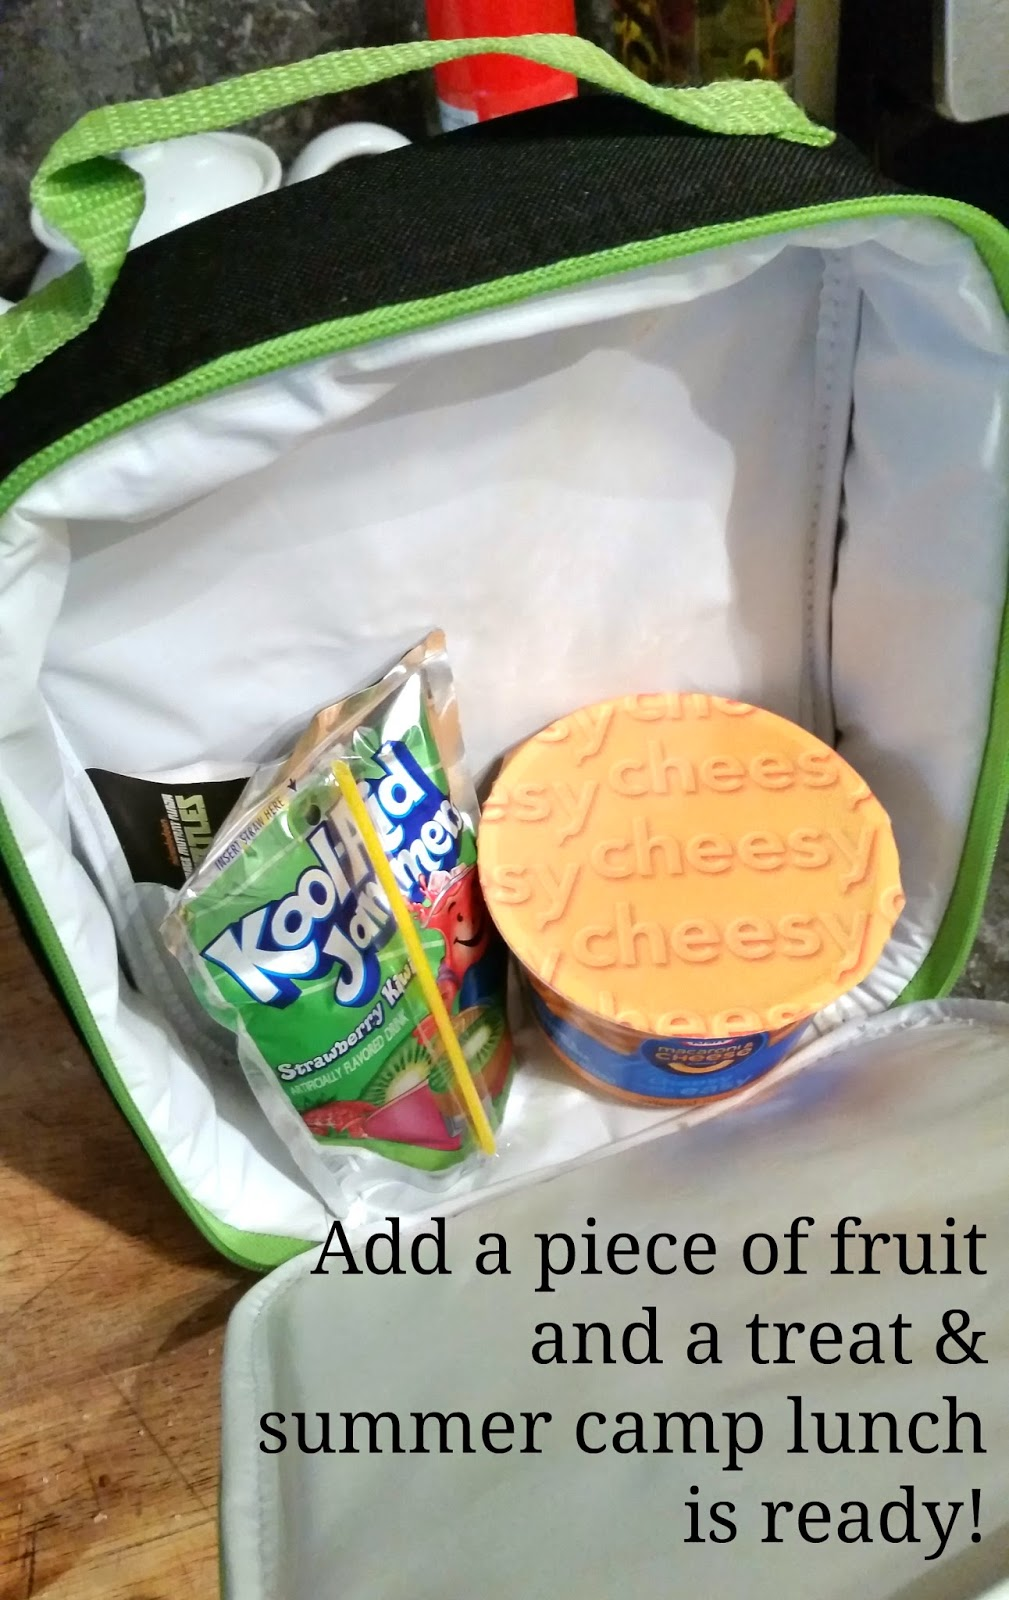 Quick & Easy Summer Camp Lunch #ComidasFaciles #shop